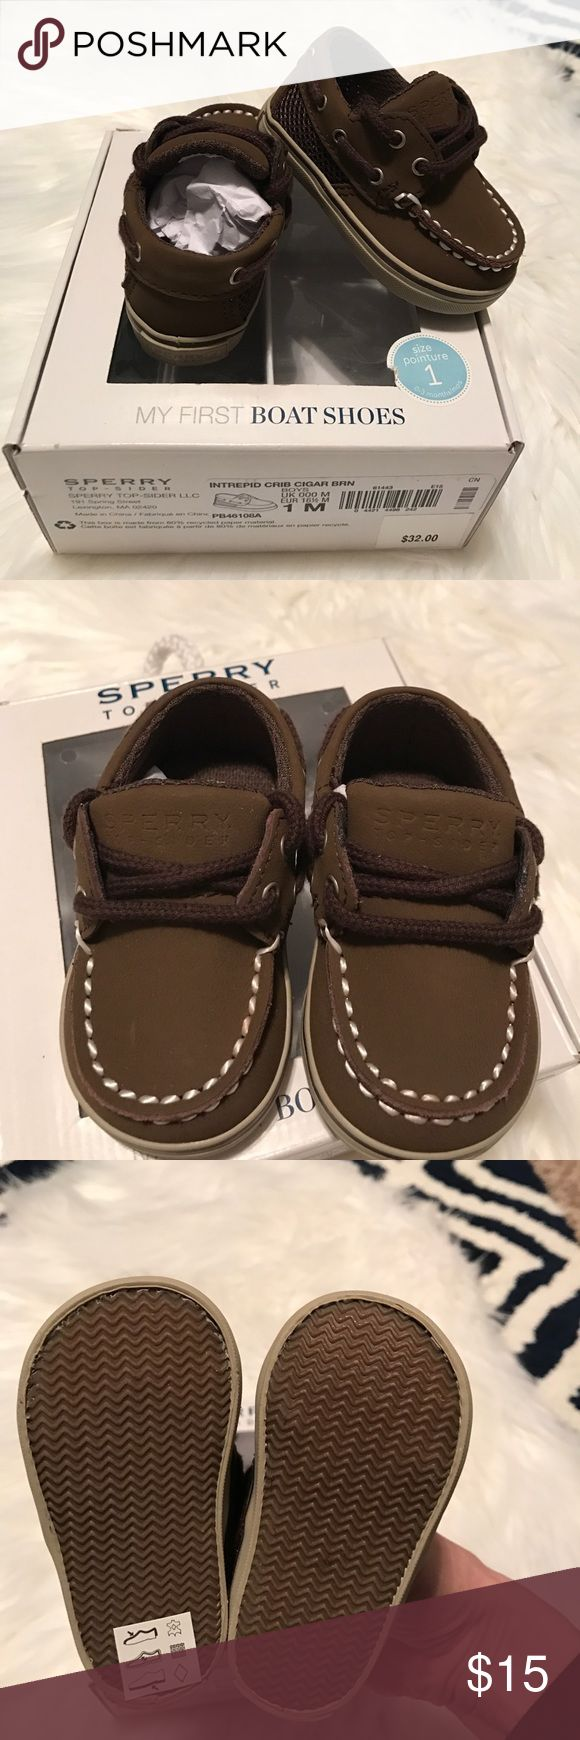 Sperry Brown Boat shoes NWT size 1m NWT Sperry Boat shoes! Never worn! Cigar Brown. My first Boat shoes! Adorable!! Size 1m 0-3 months Sperry Top-Sider Shoes Baby & Walker